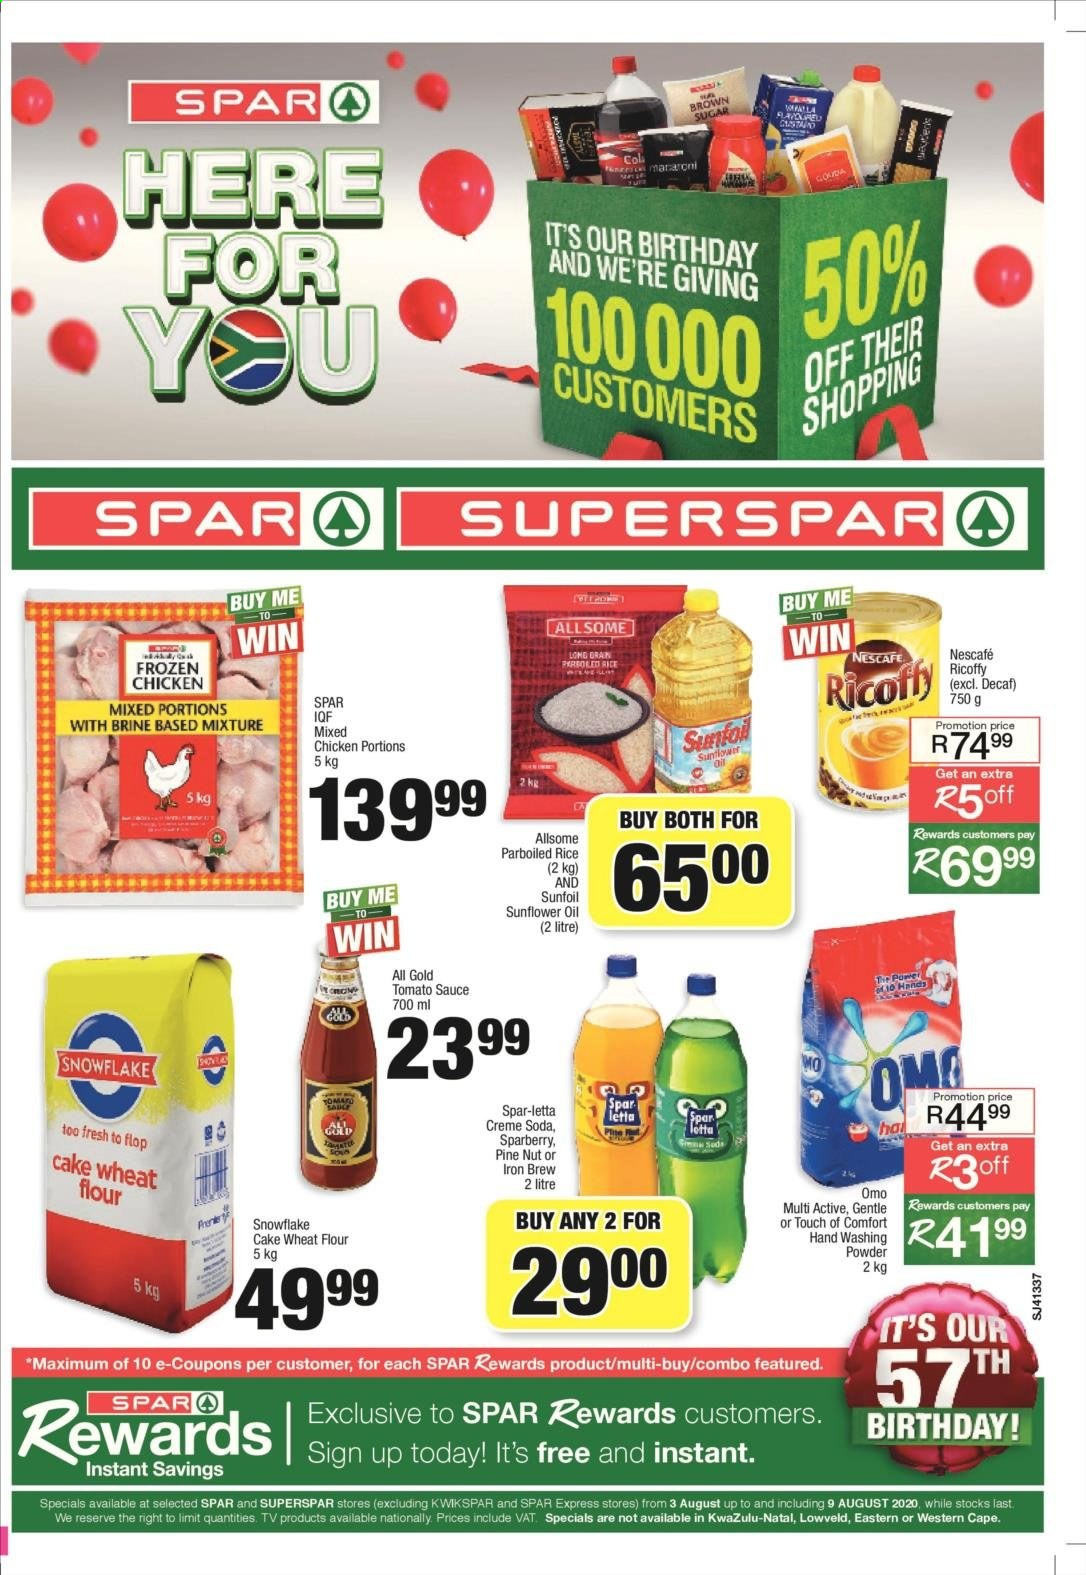 SPAR catalogue  - 08.03.2020 - 08.09.2020 - Sales products - crème, flour, rice, snowflake, sunflower oil, tomato sauce, wheat flour, iron, pine, chicken, soda, ricoffy, sauce, omo, sunflower, nescafé, washing powder, parboiled rice, cake wheat flour, tomato. Page 1.